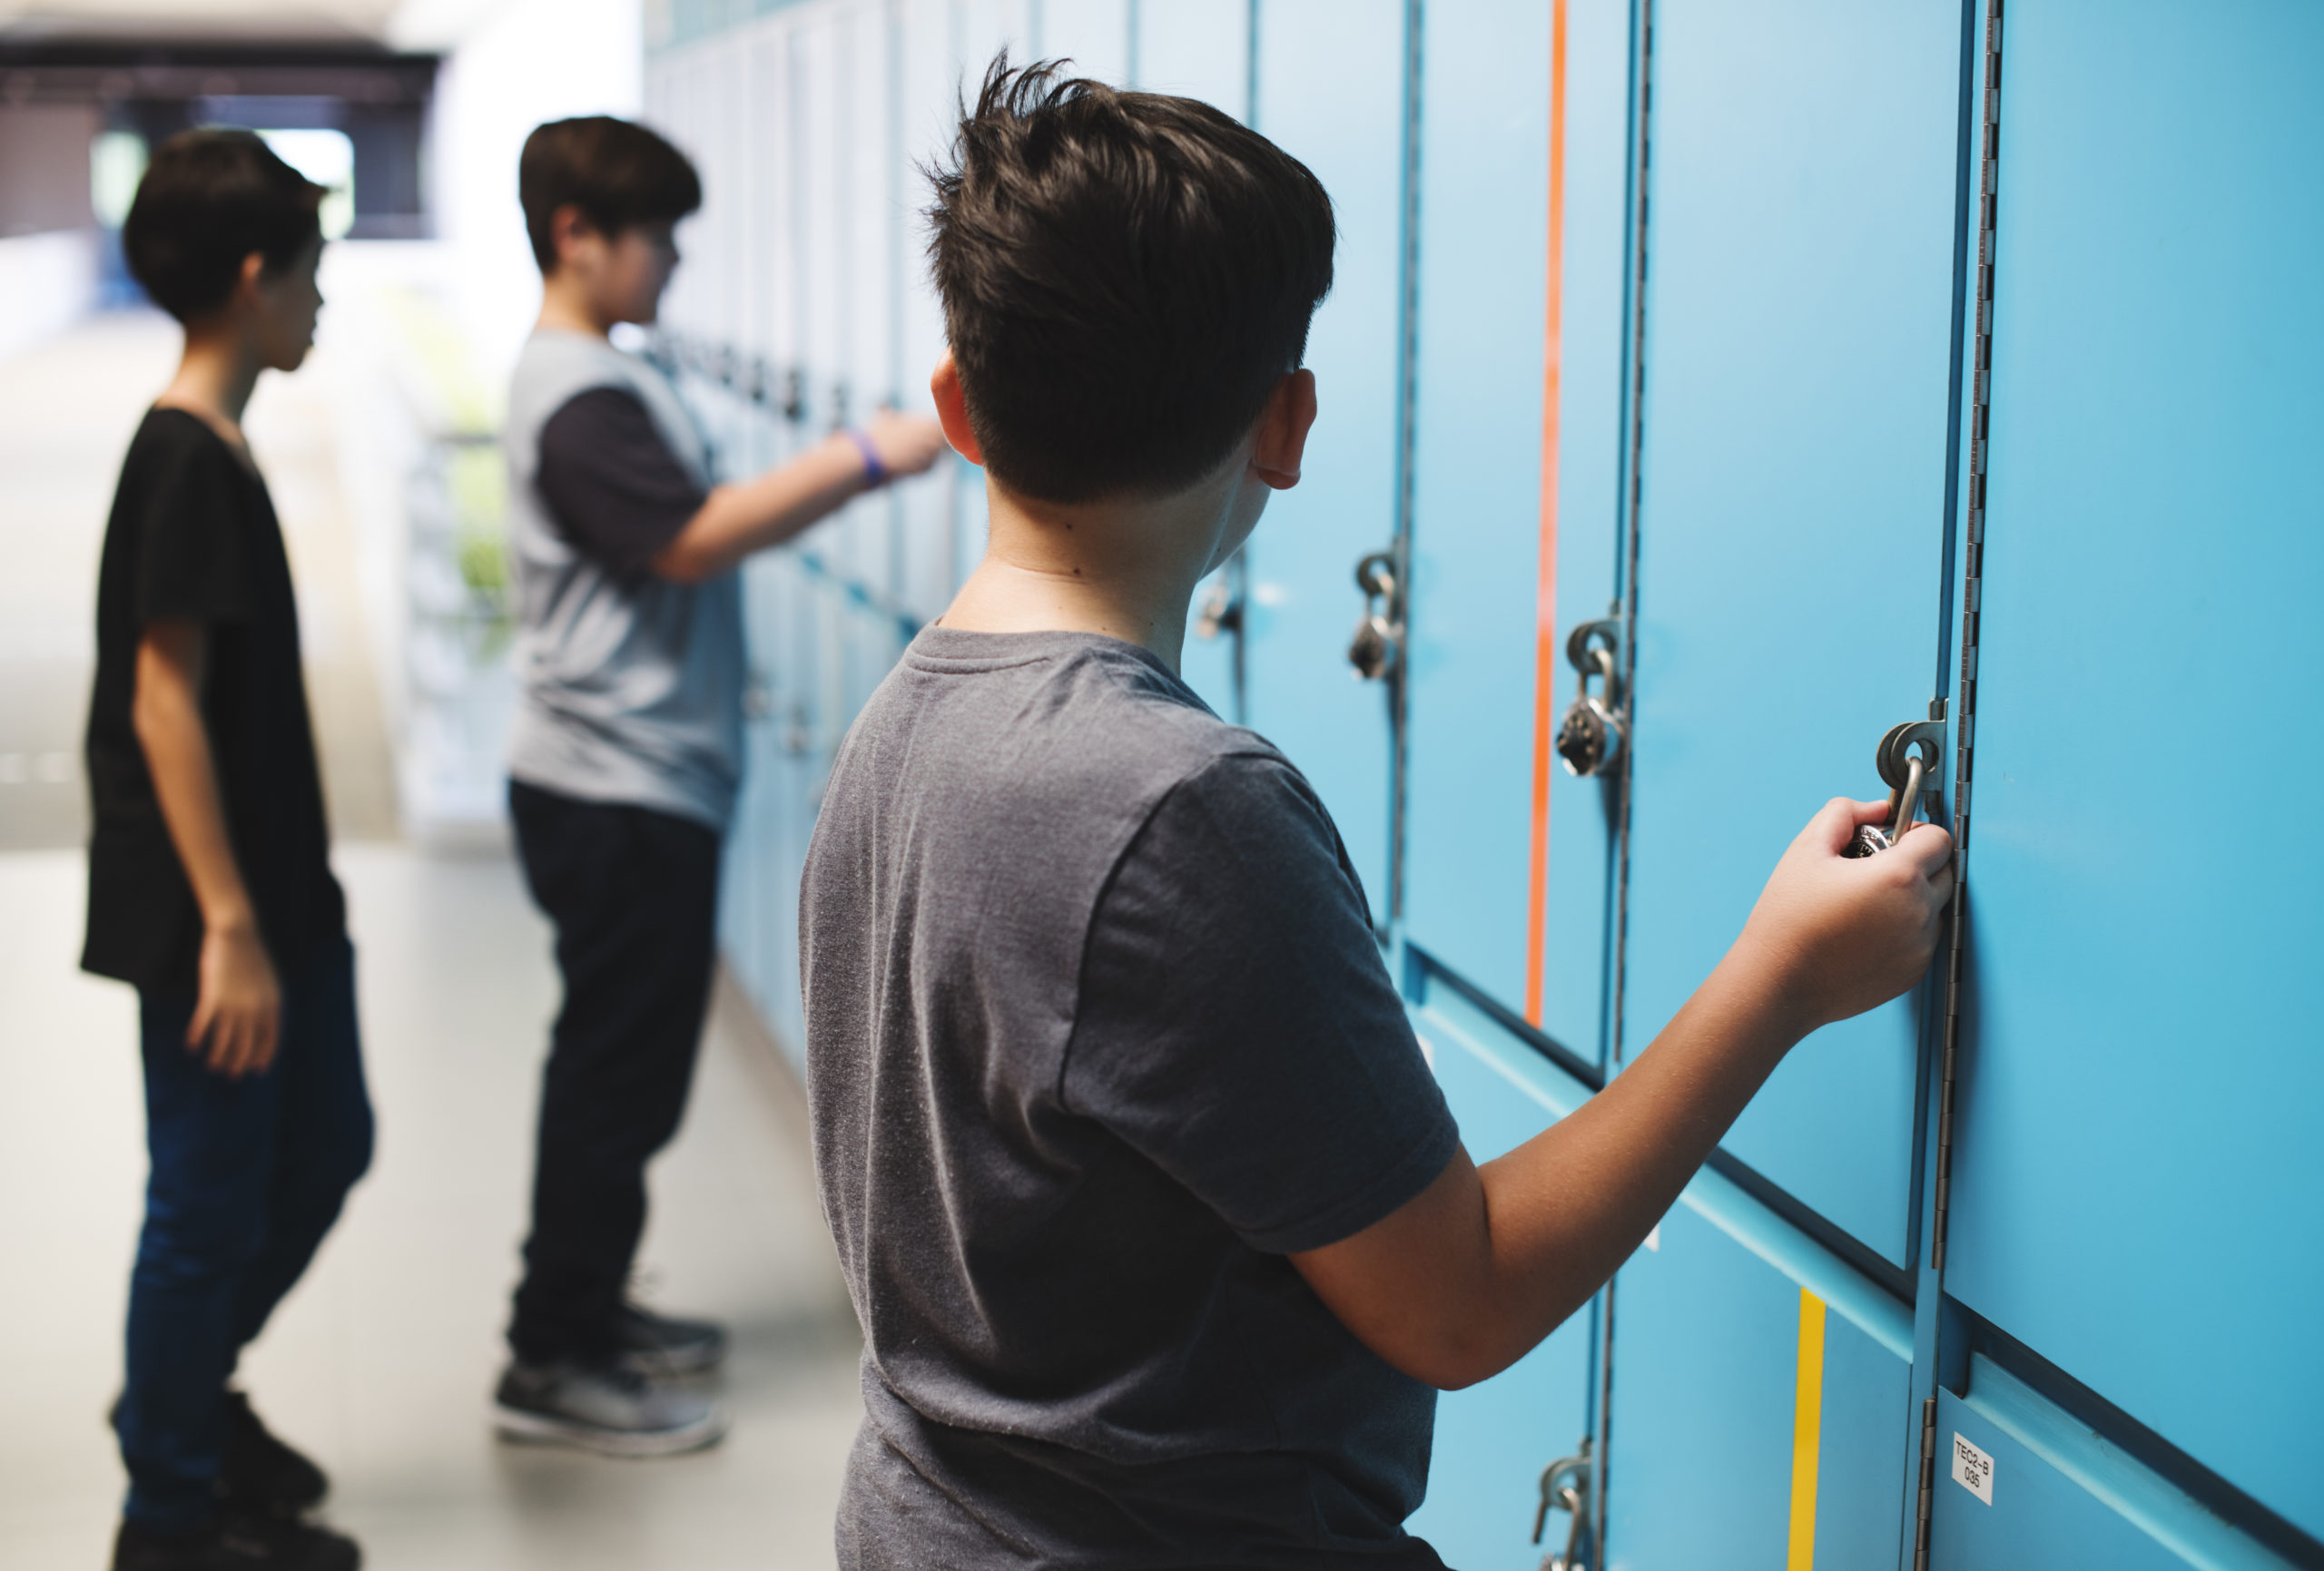 The new trans policy asks teachers to use trans students' names.